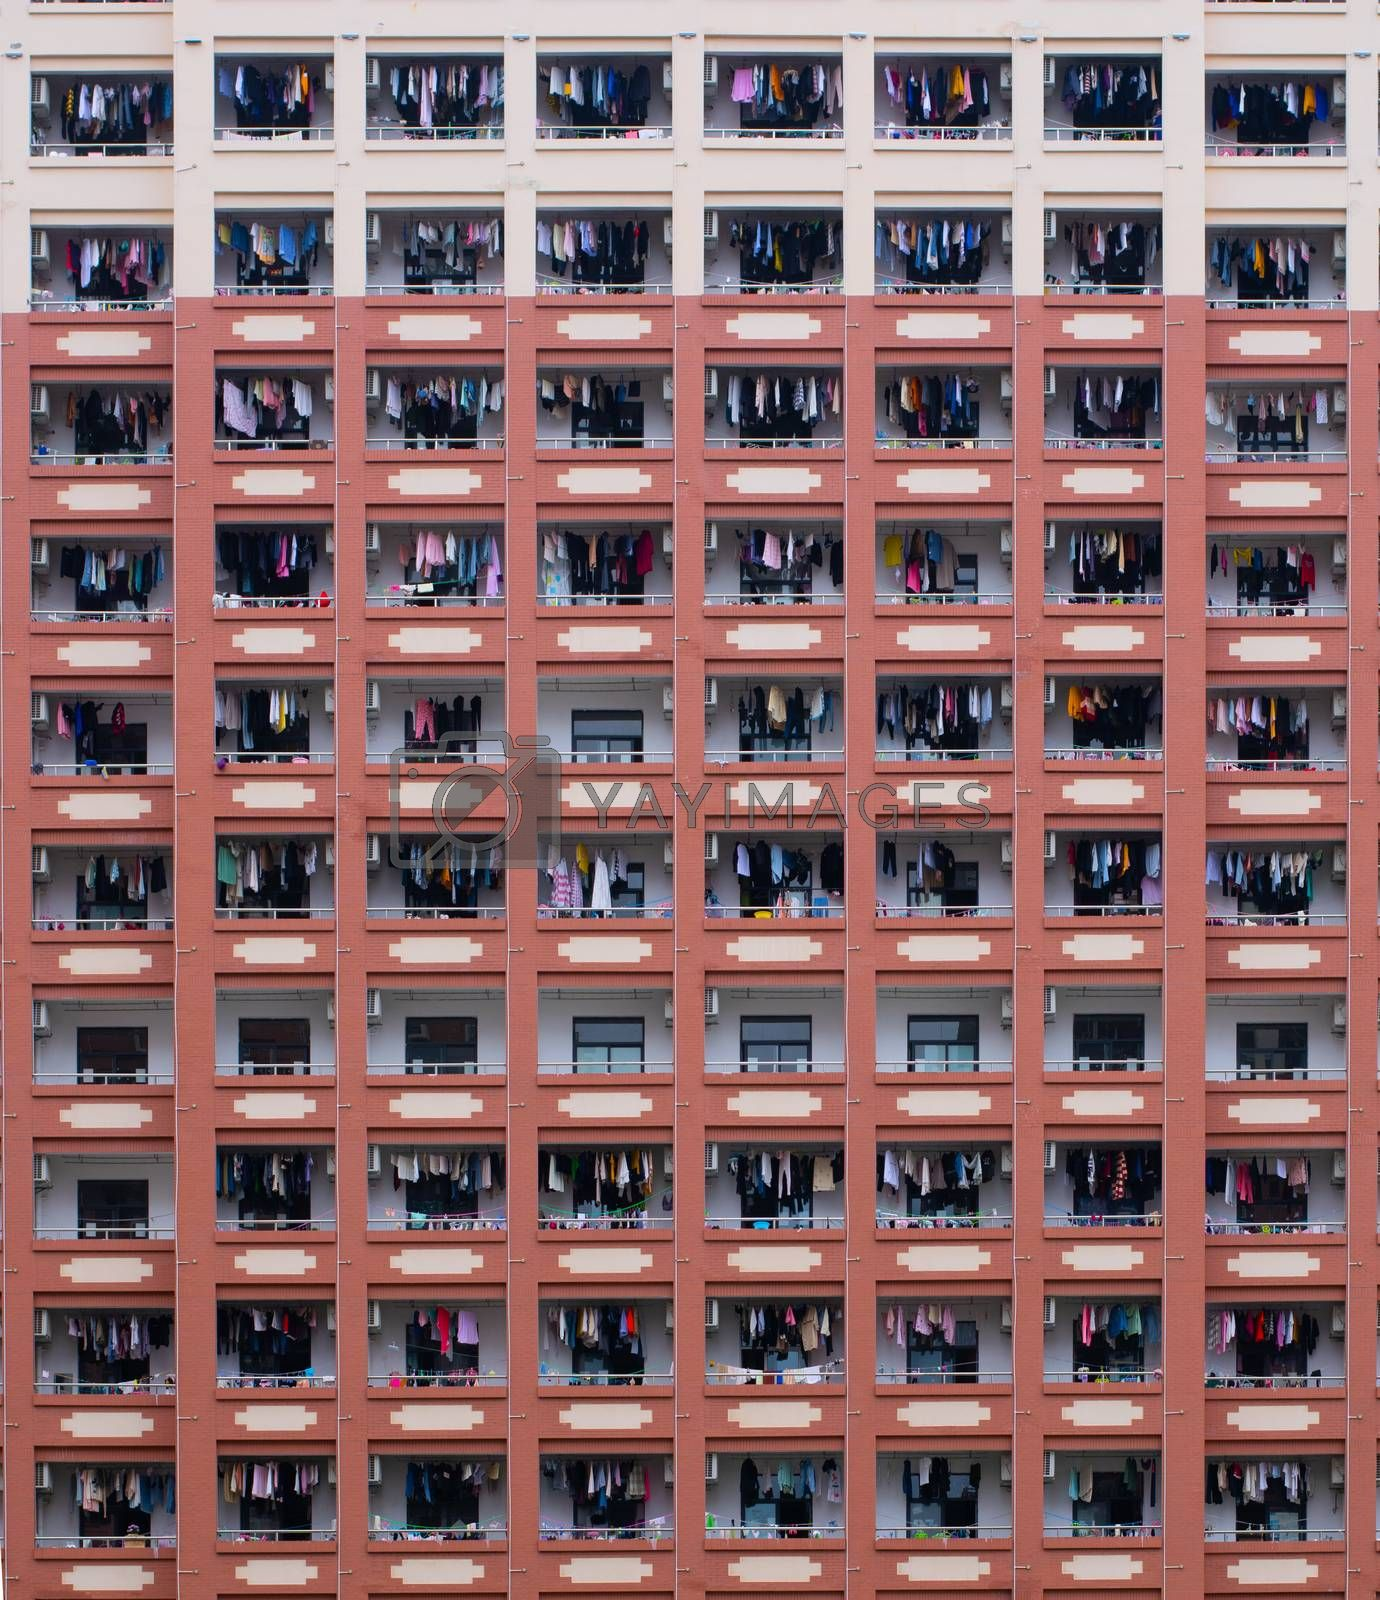 Crowded apartment building by benwehrman